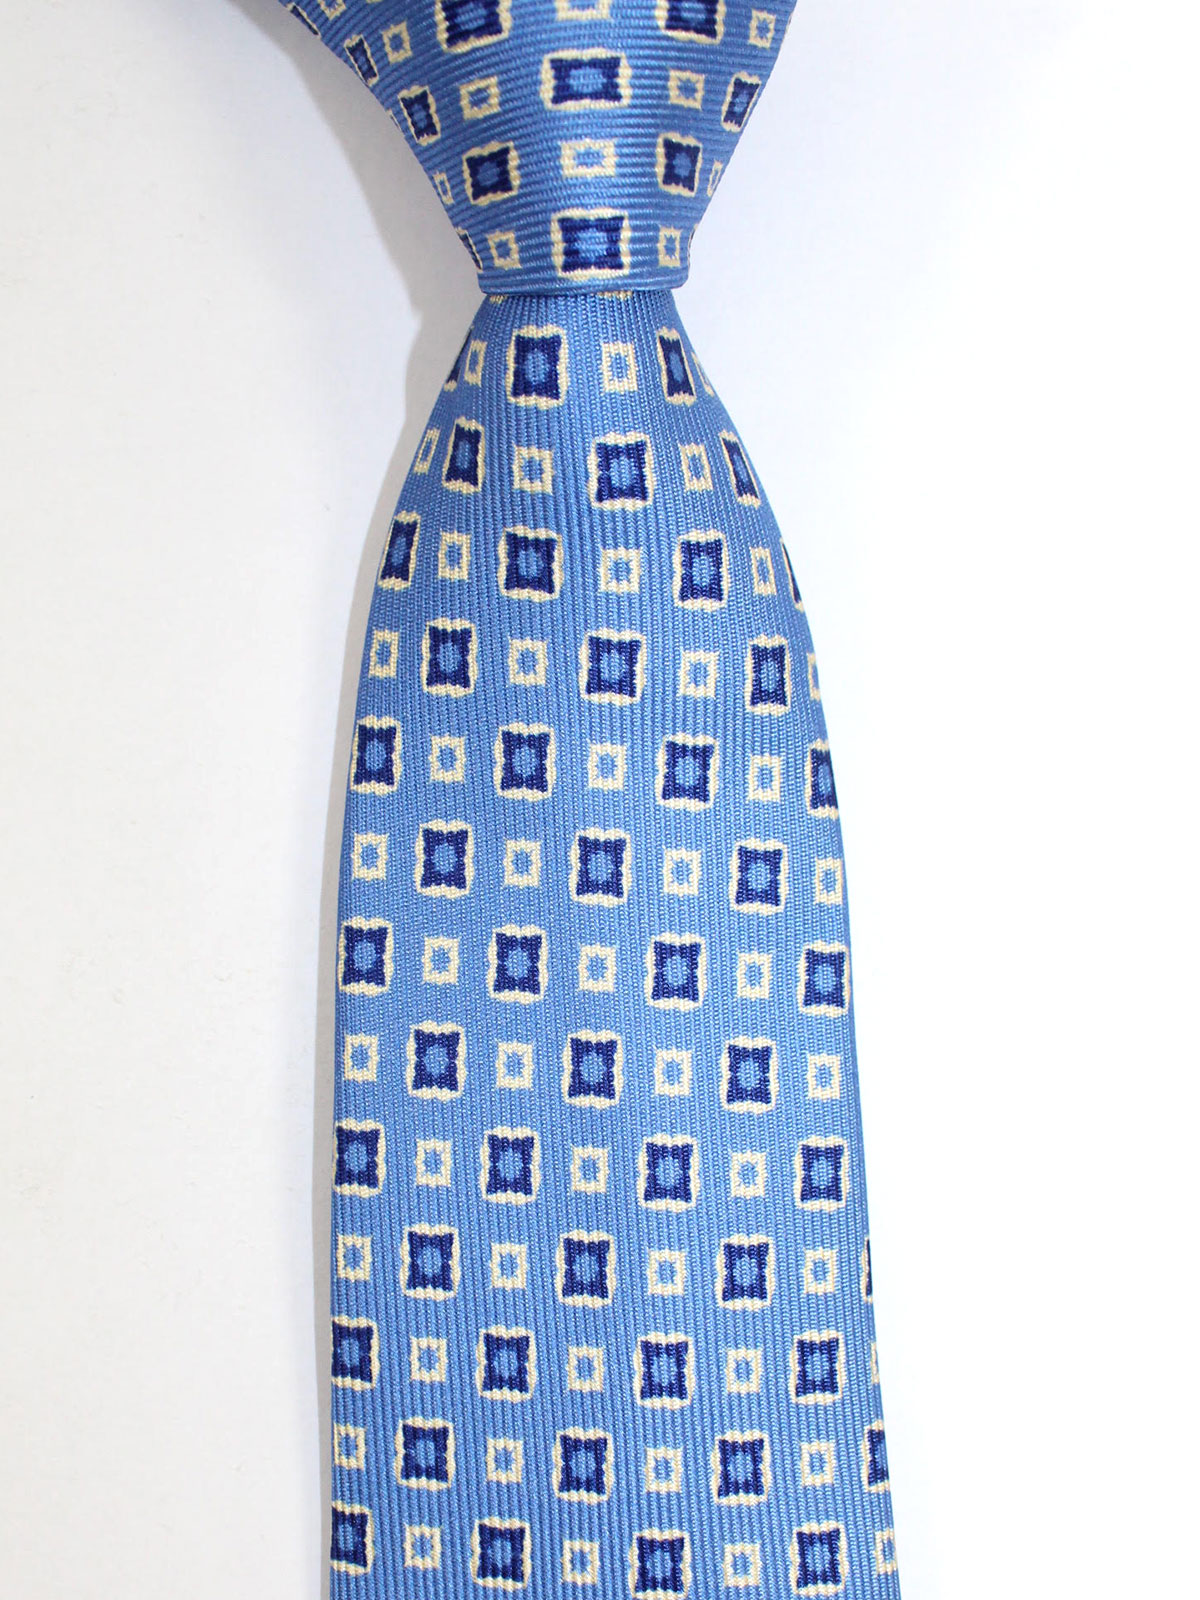 Massimo Valeri Extra Long Tie Blue Navy White Geometric